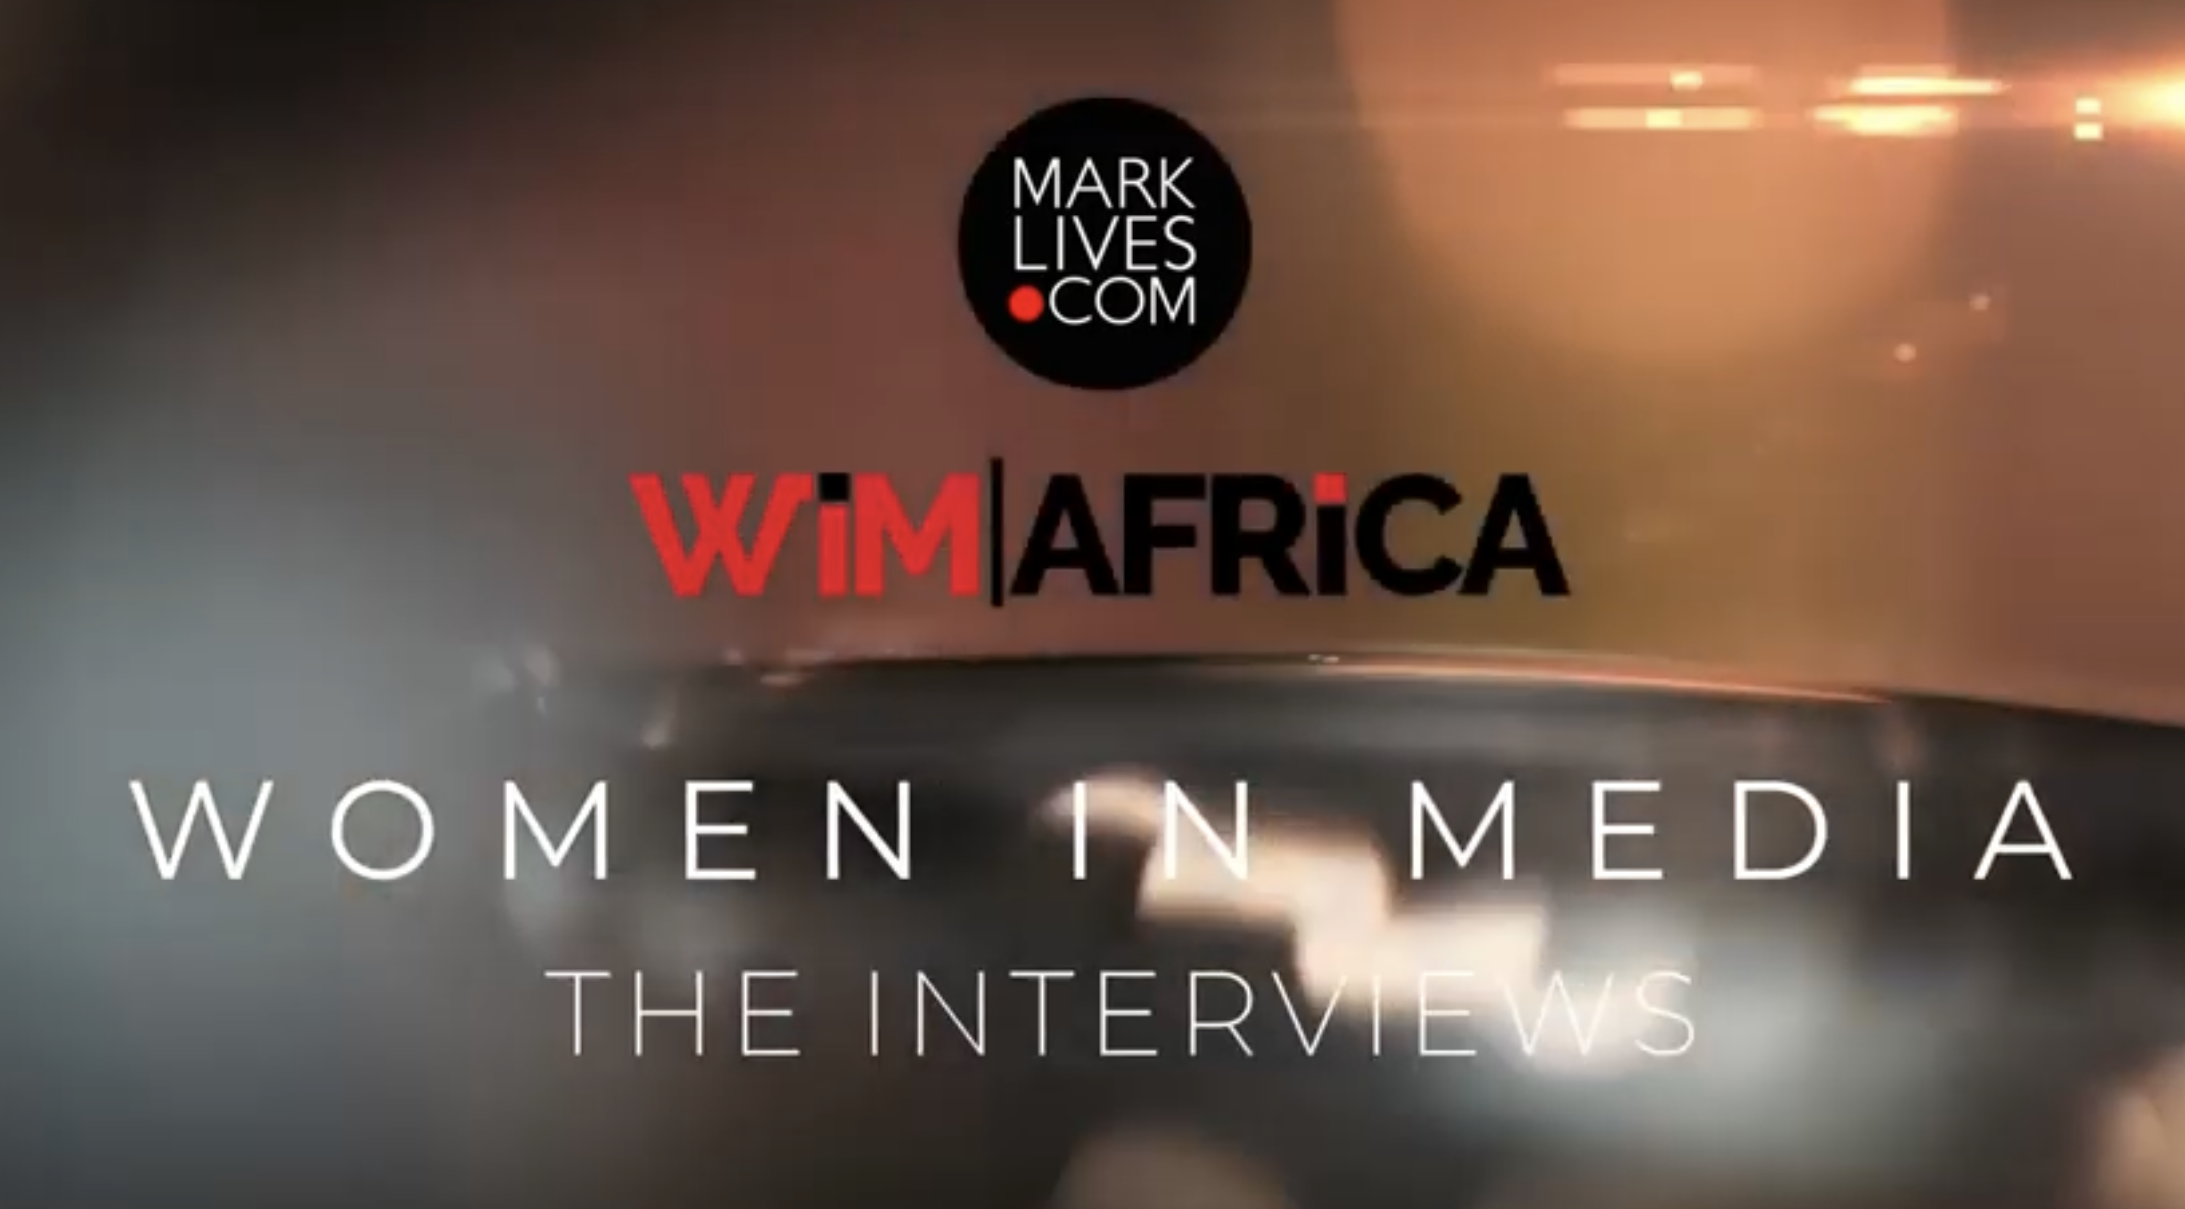 MarkLives speaks to Ifeoma Dozie of Mastercard in partnership with WiM Africa